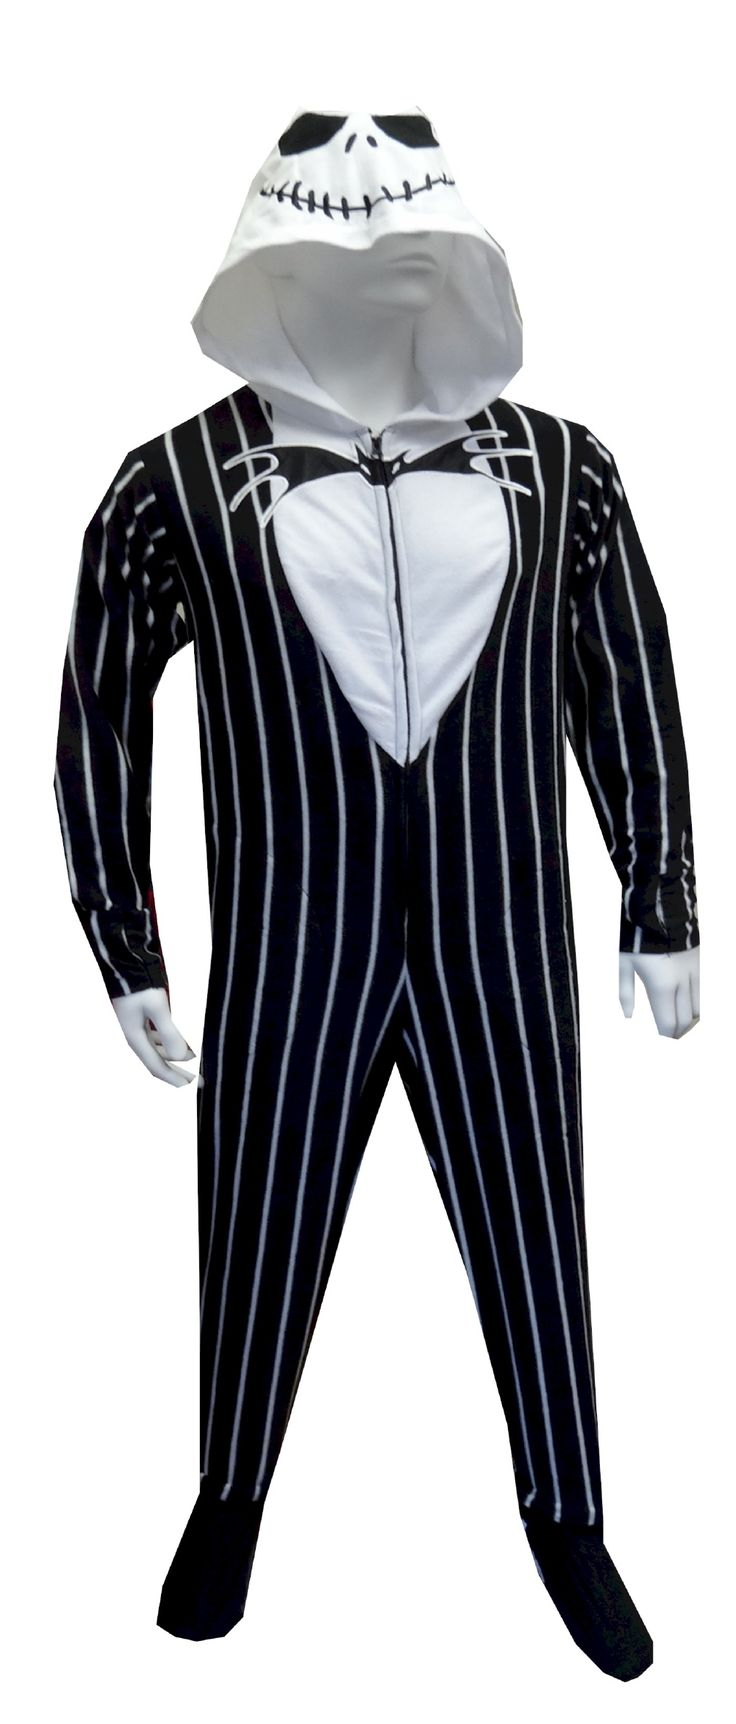 "Nightmare Before Christmas Jack Skellington Adult Footie Pajama  Now you can look just like Jack Skellington! These pajamas for adults are designed to look just like Jack. The hood completes the disguise and gives added warmth on cold nights. This soft fleece footie pajama has a half-zip front, side pockets and feet that completely zip off! Unisex sizing. Medium fits 5'3""-5'7"" 125-150 lbs. Large fits 5'7""-5'11"" 150-175 lbs. XL fits 5'11""-6'2"" 175-200 lbs. 2X fits 5'11""-6'3"" 200-250. $35"